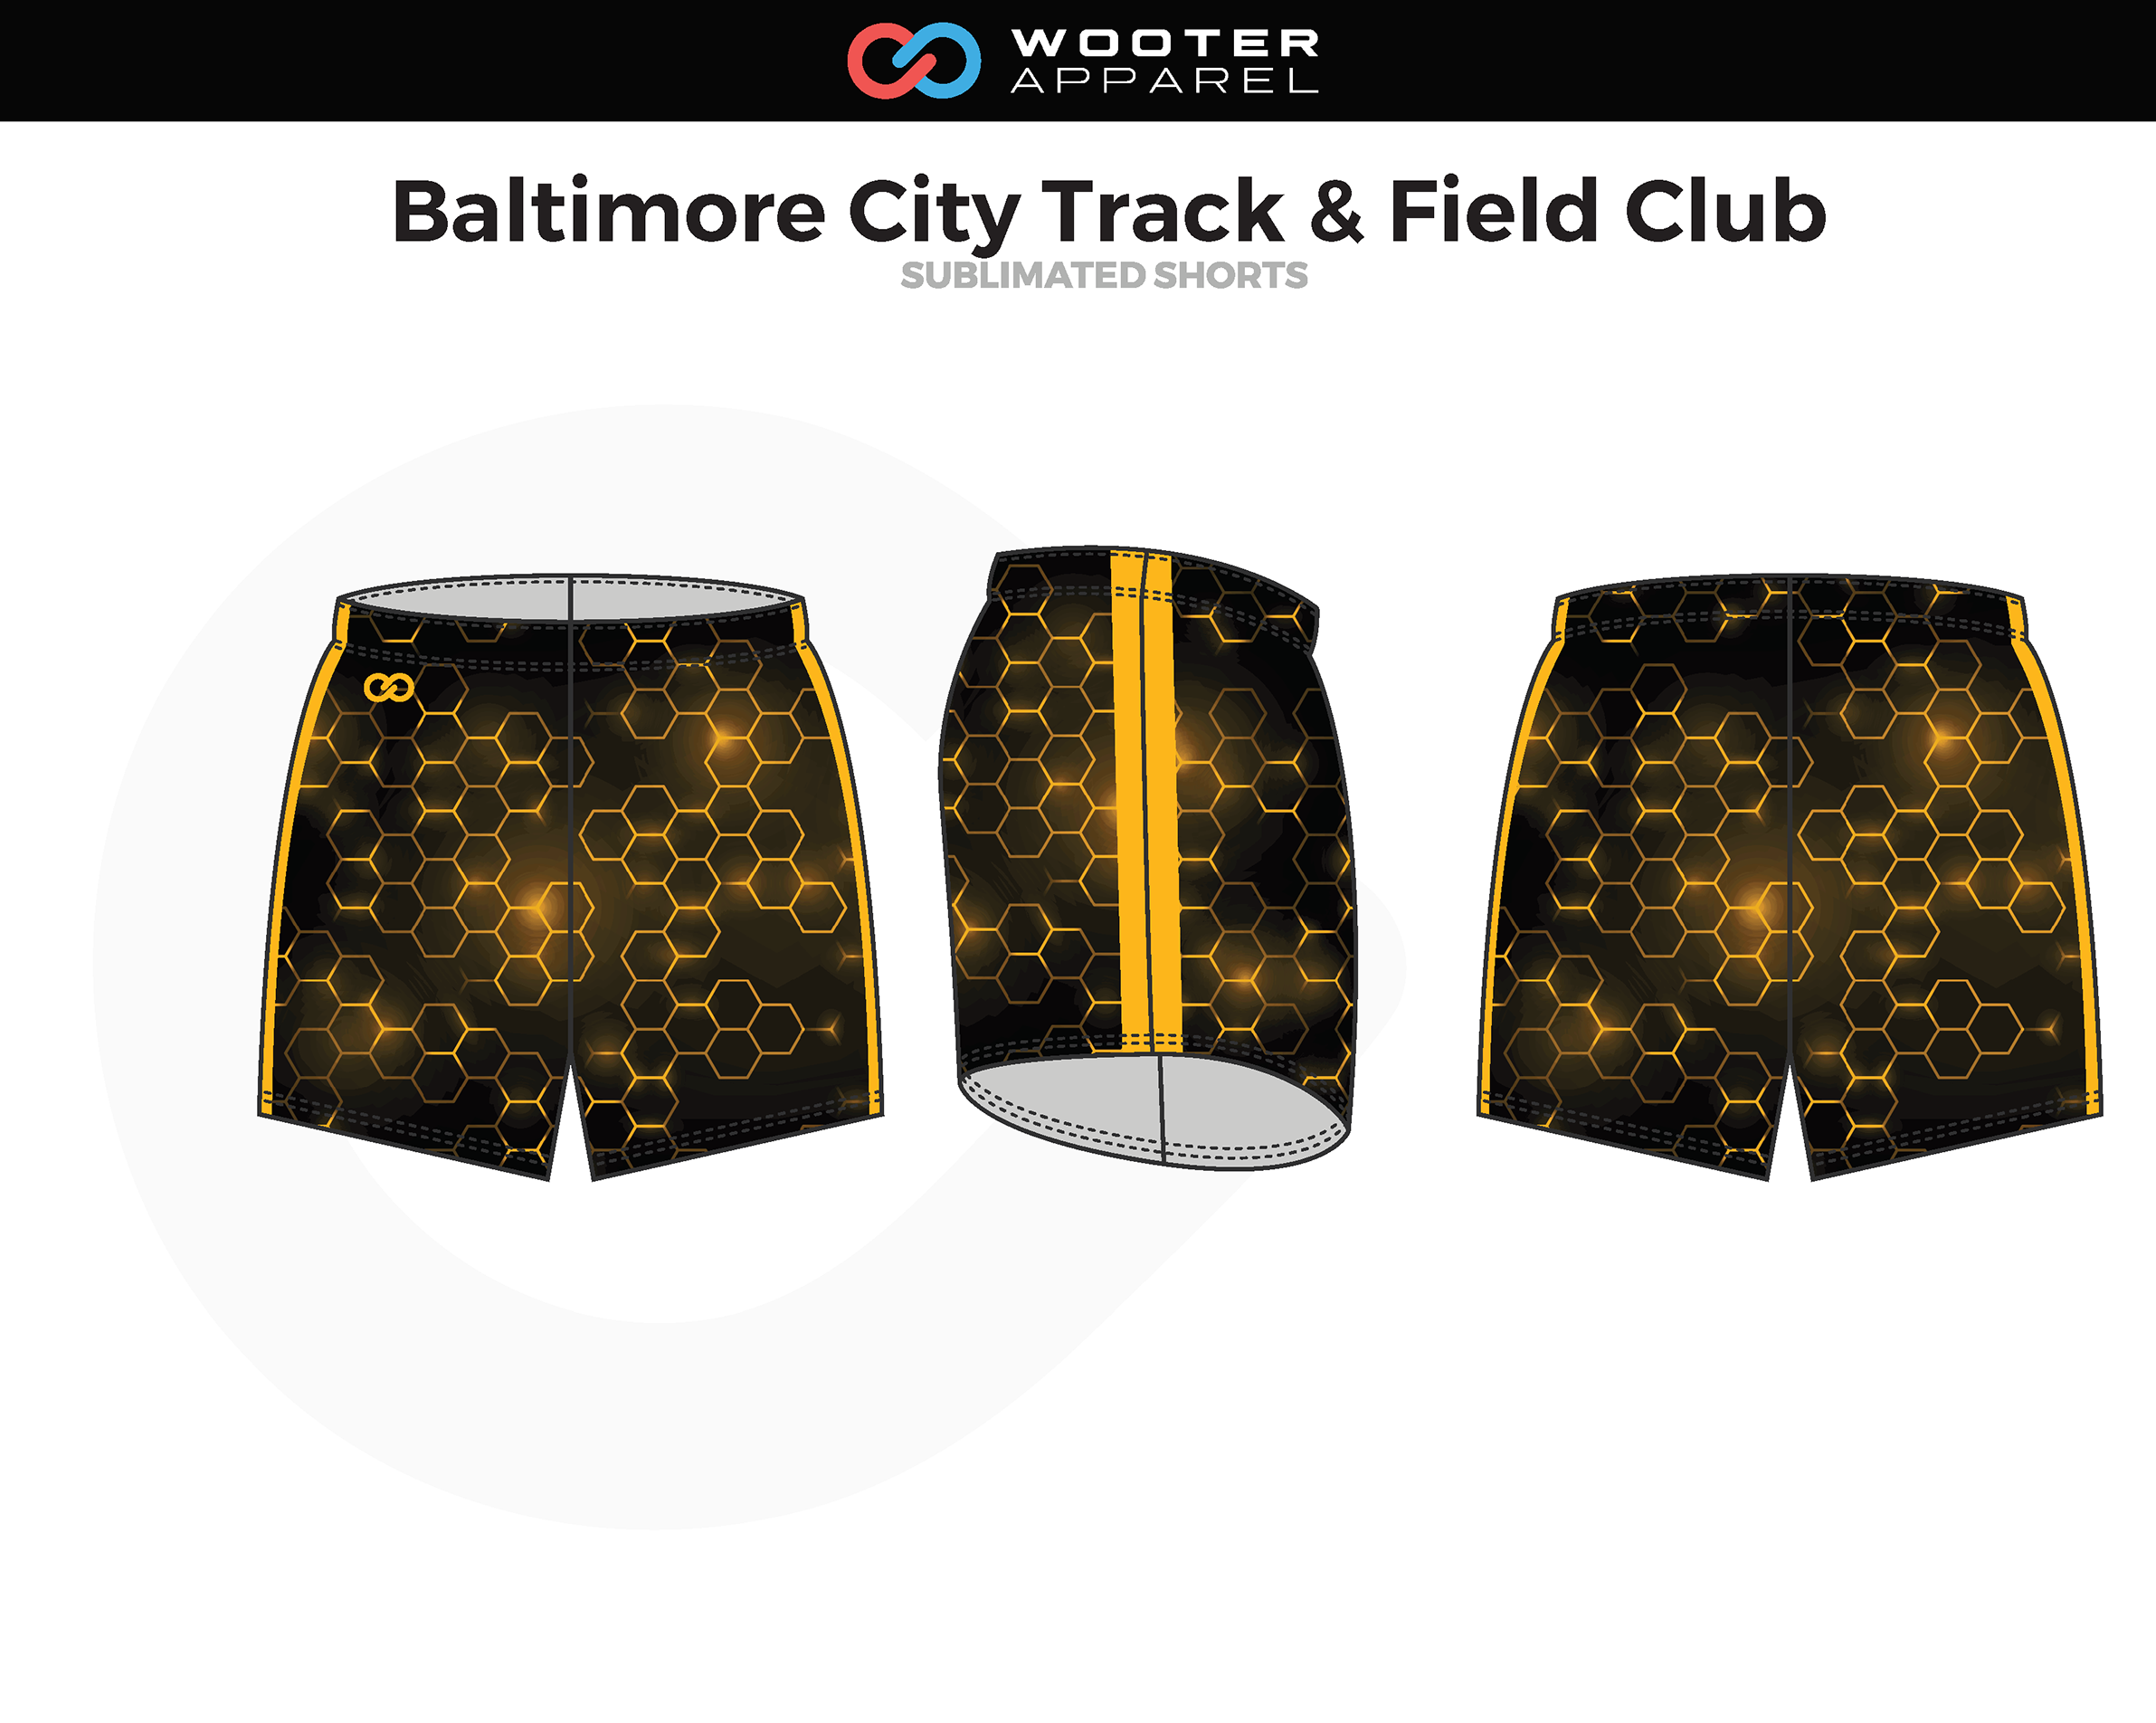 BALTIMORE CITY TRACK & FIELD CLUB Black Yellow Track Shorts